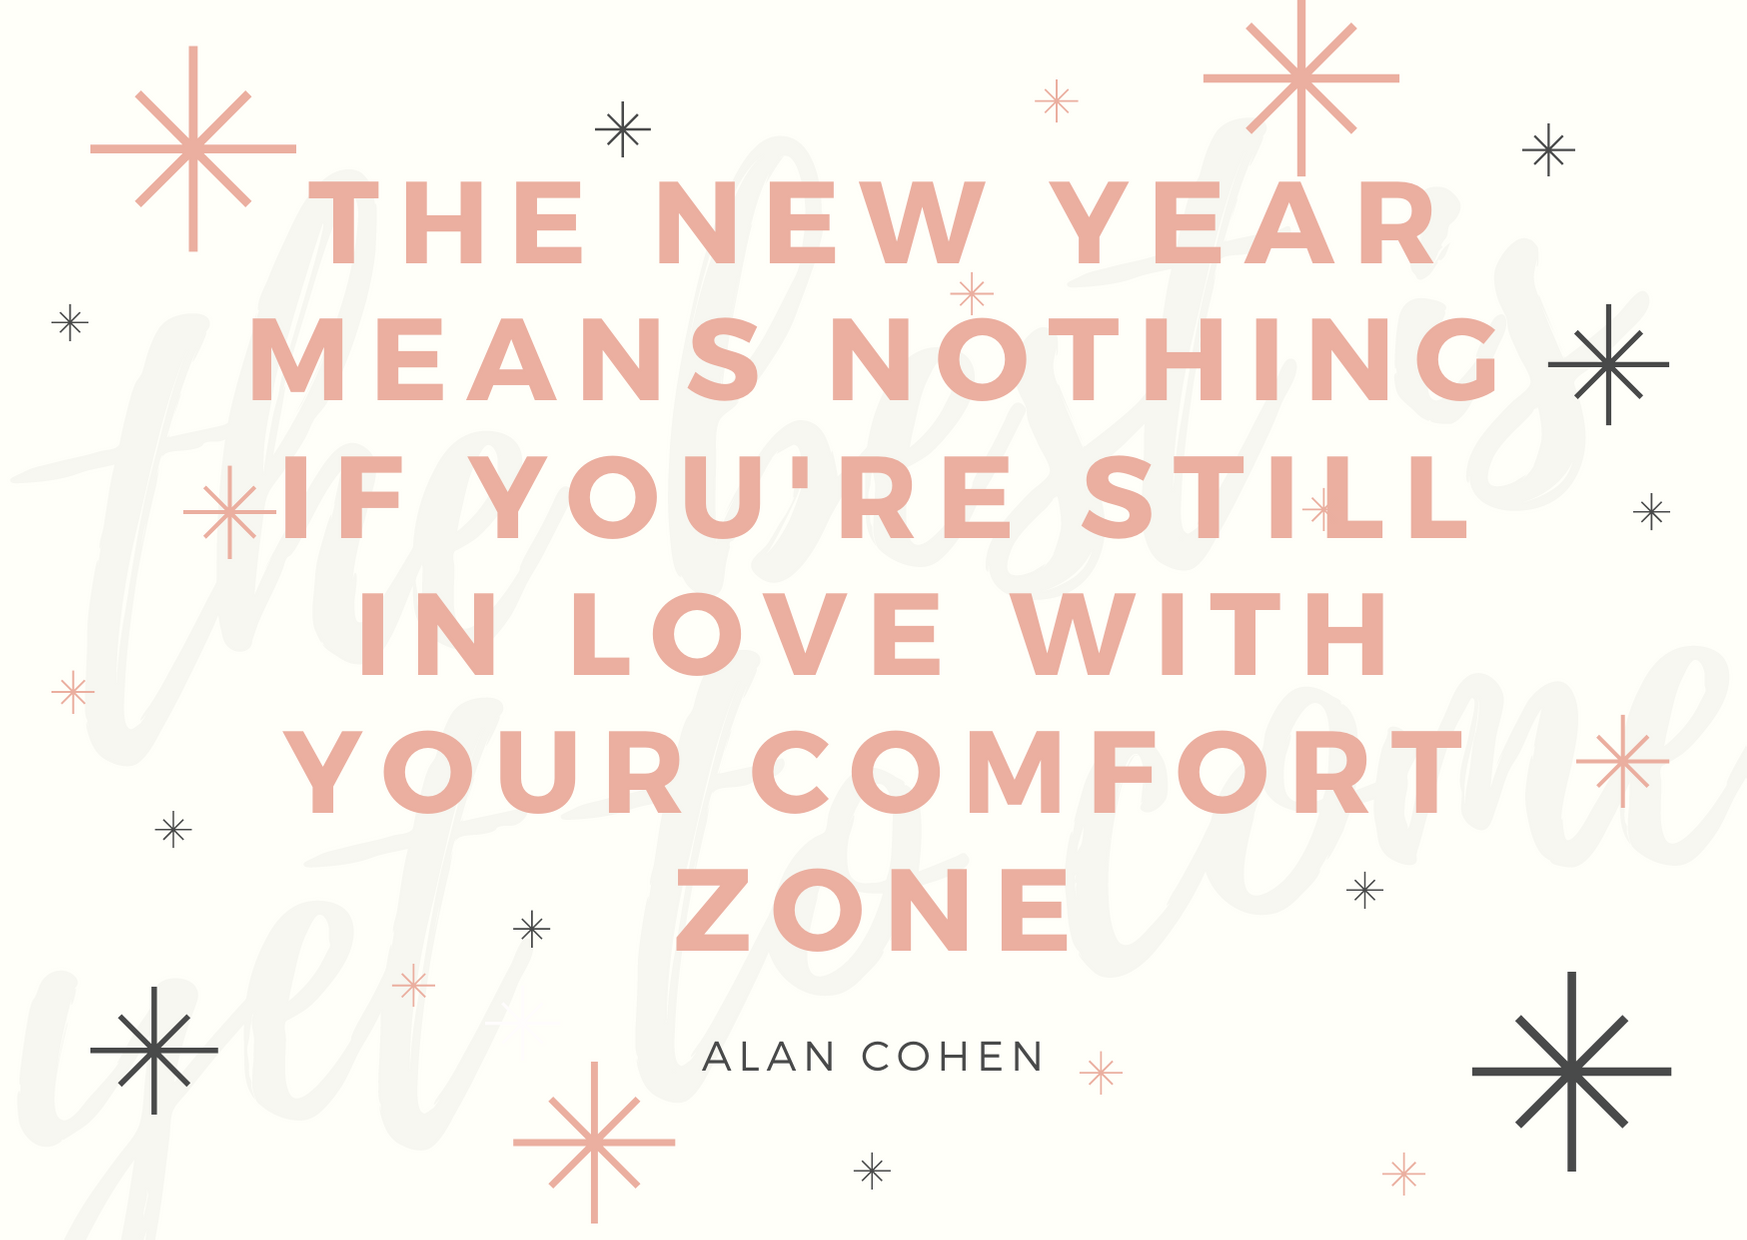 The new year means nothing if you're still in love with your comfort zone